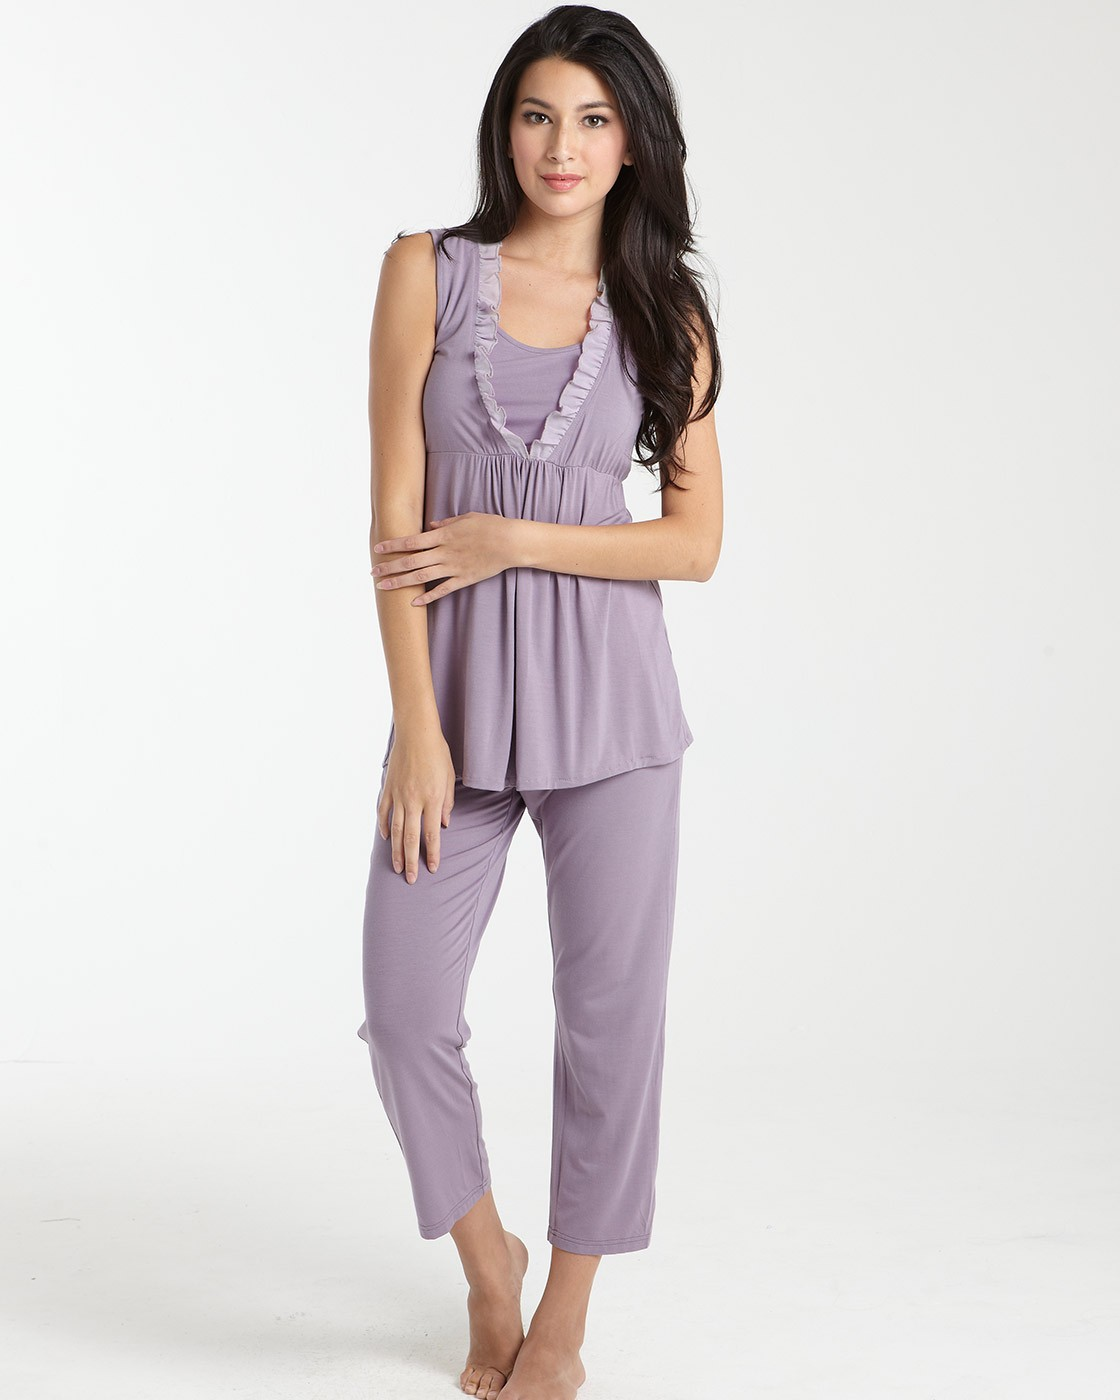 chiffon-trim-bamboo-pj-set_20150520-3095_dusky-grape.jpg